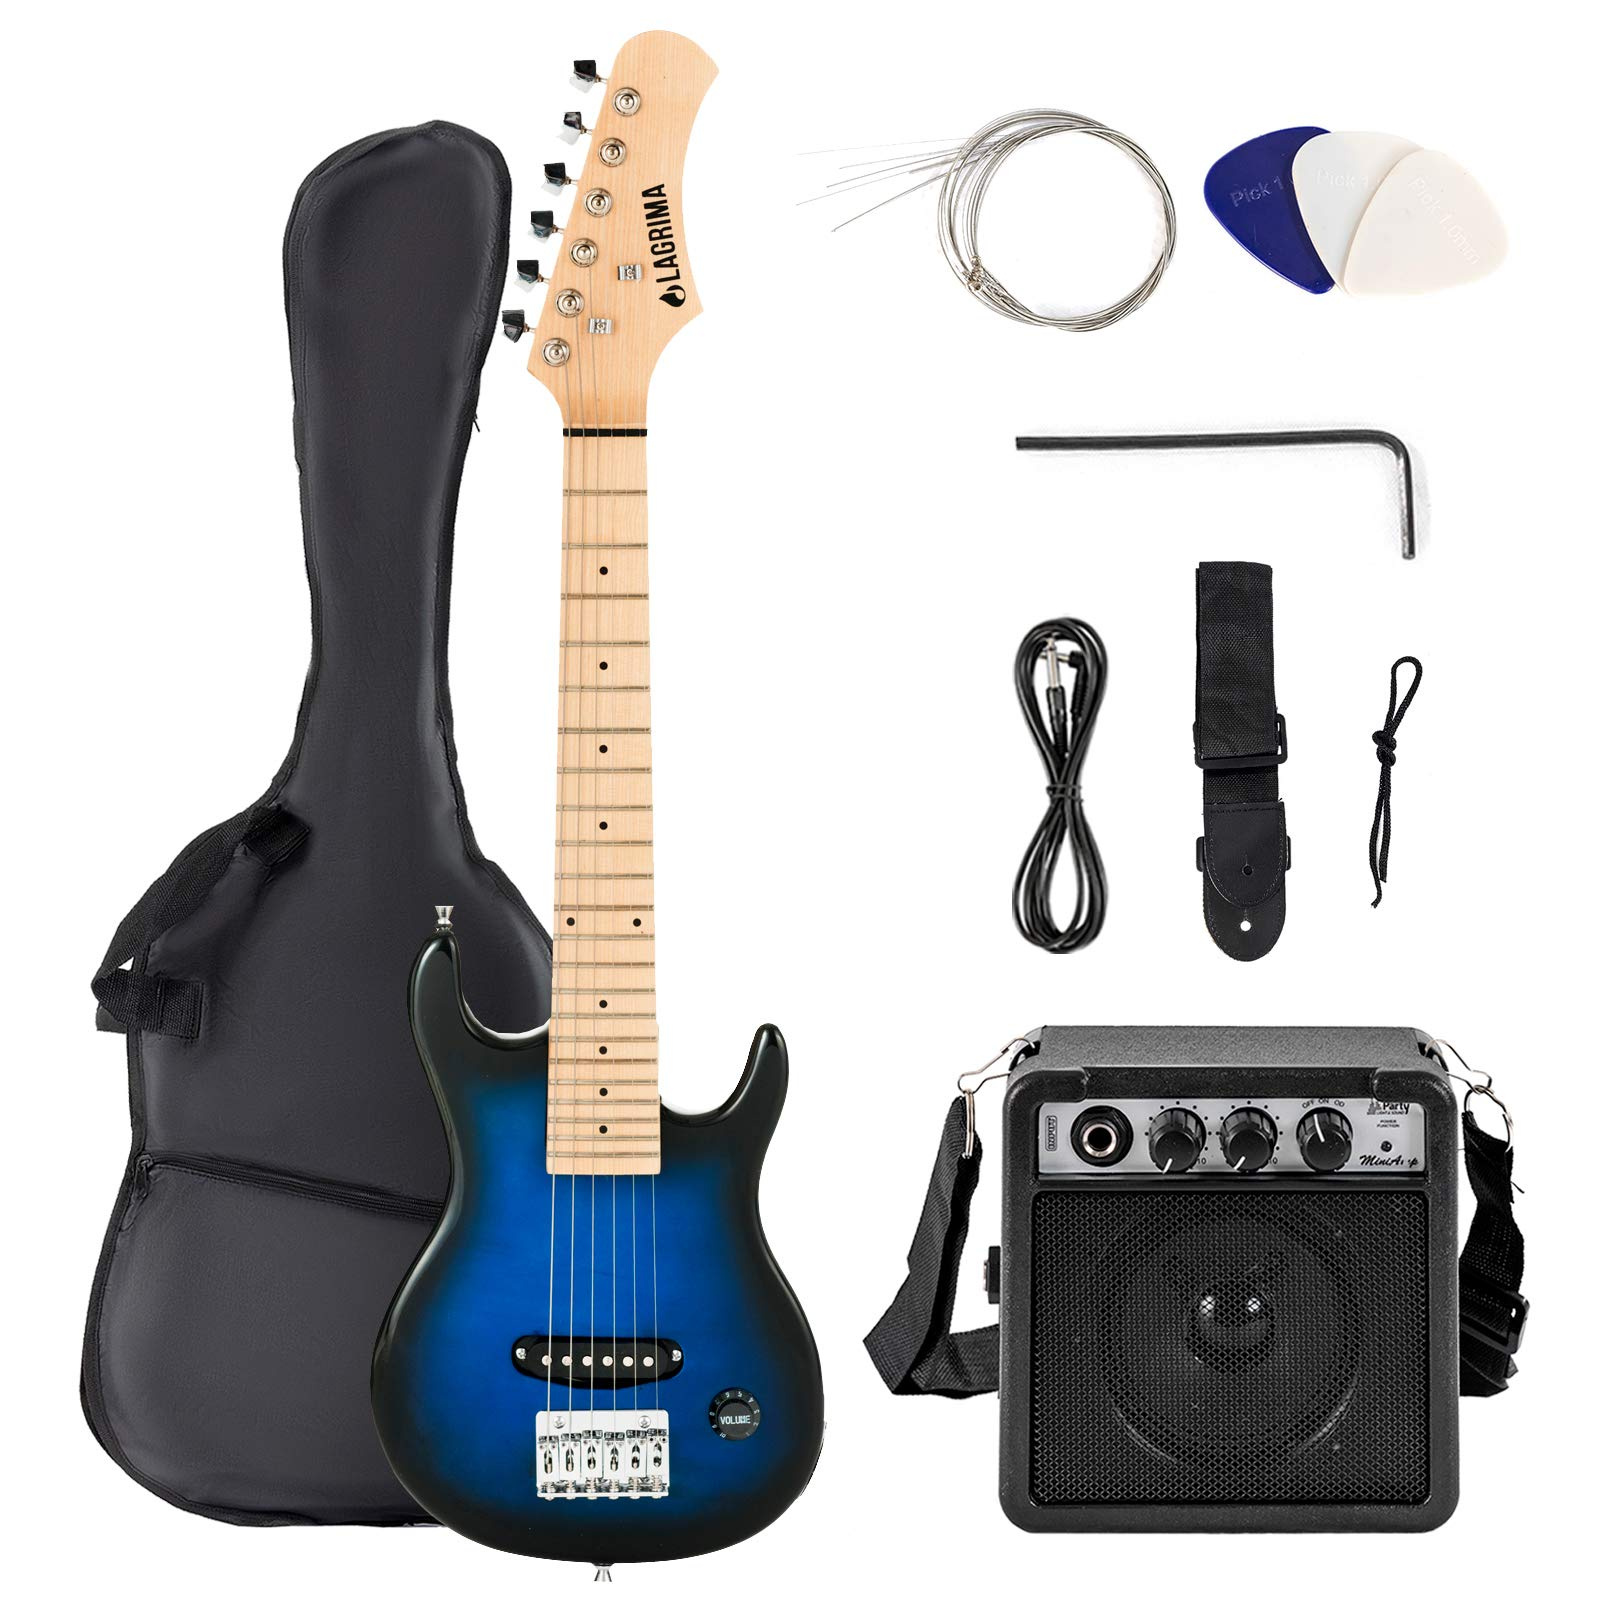 LAGRIMA30 Inch Electric Guitar Starter Kit with 5W Amp, Case and Accessories Pack Beginner Starter Package (30, Blue) by LAGRIMA (Image #1)